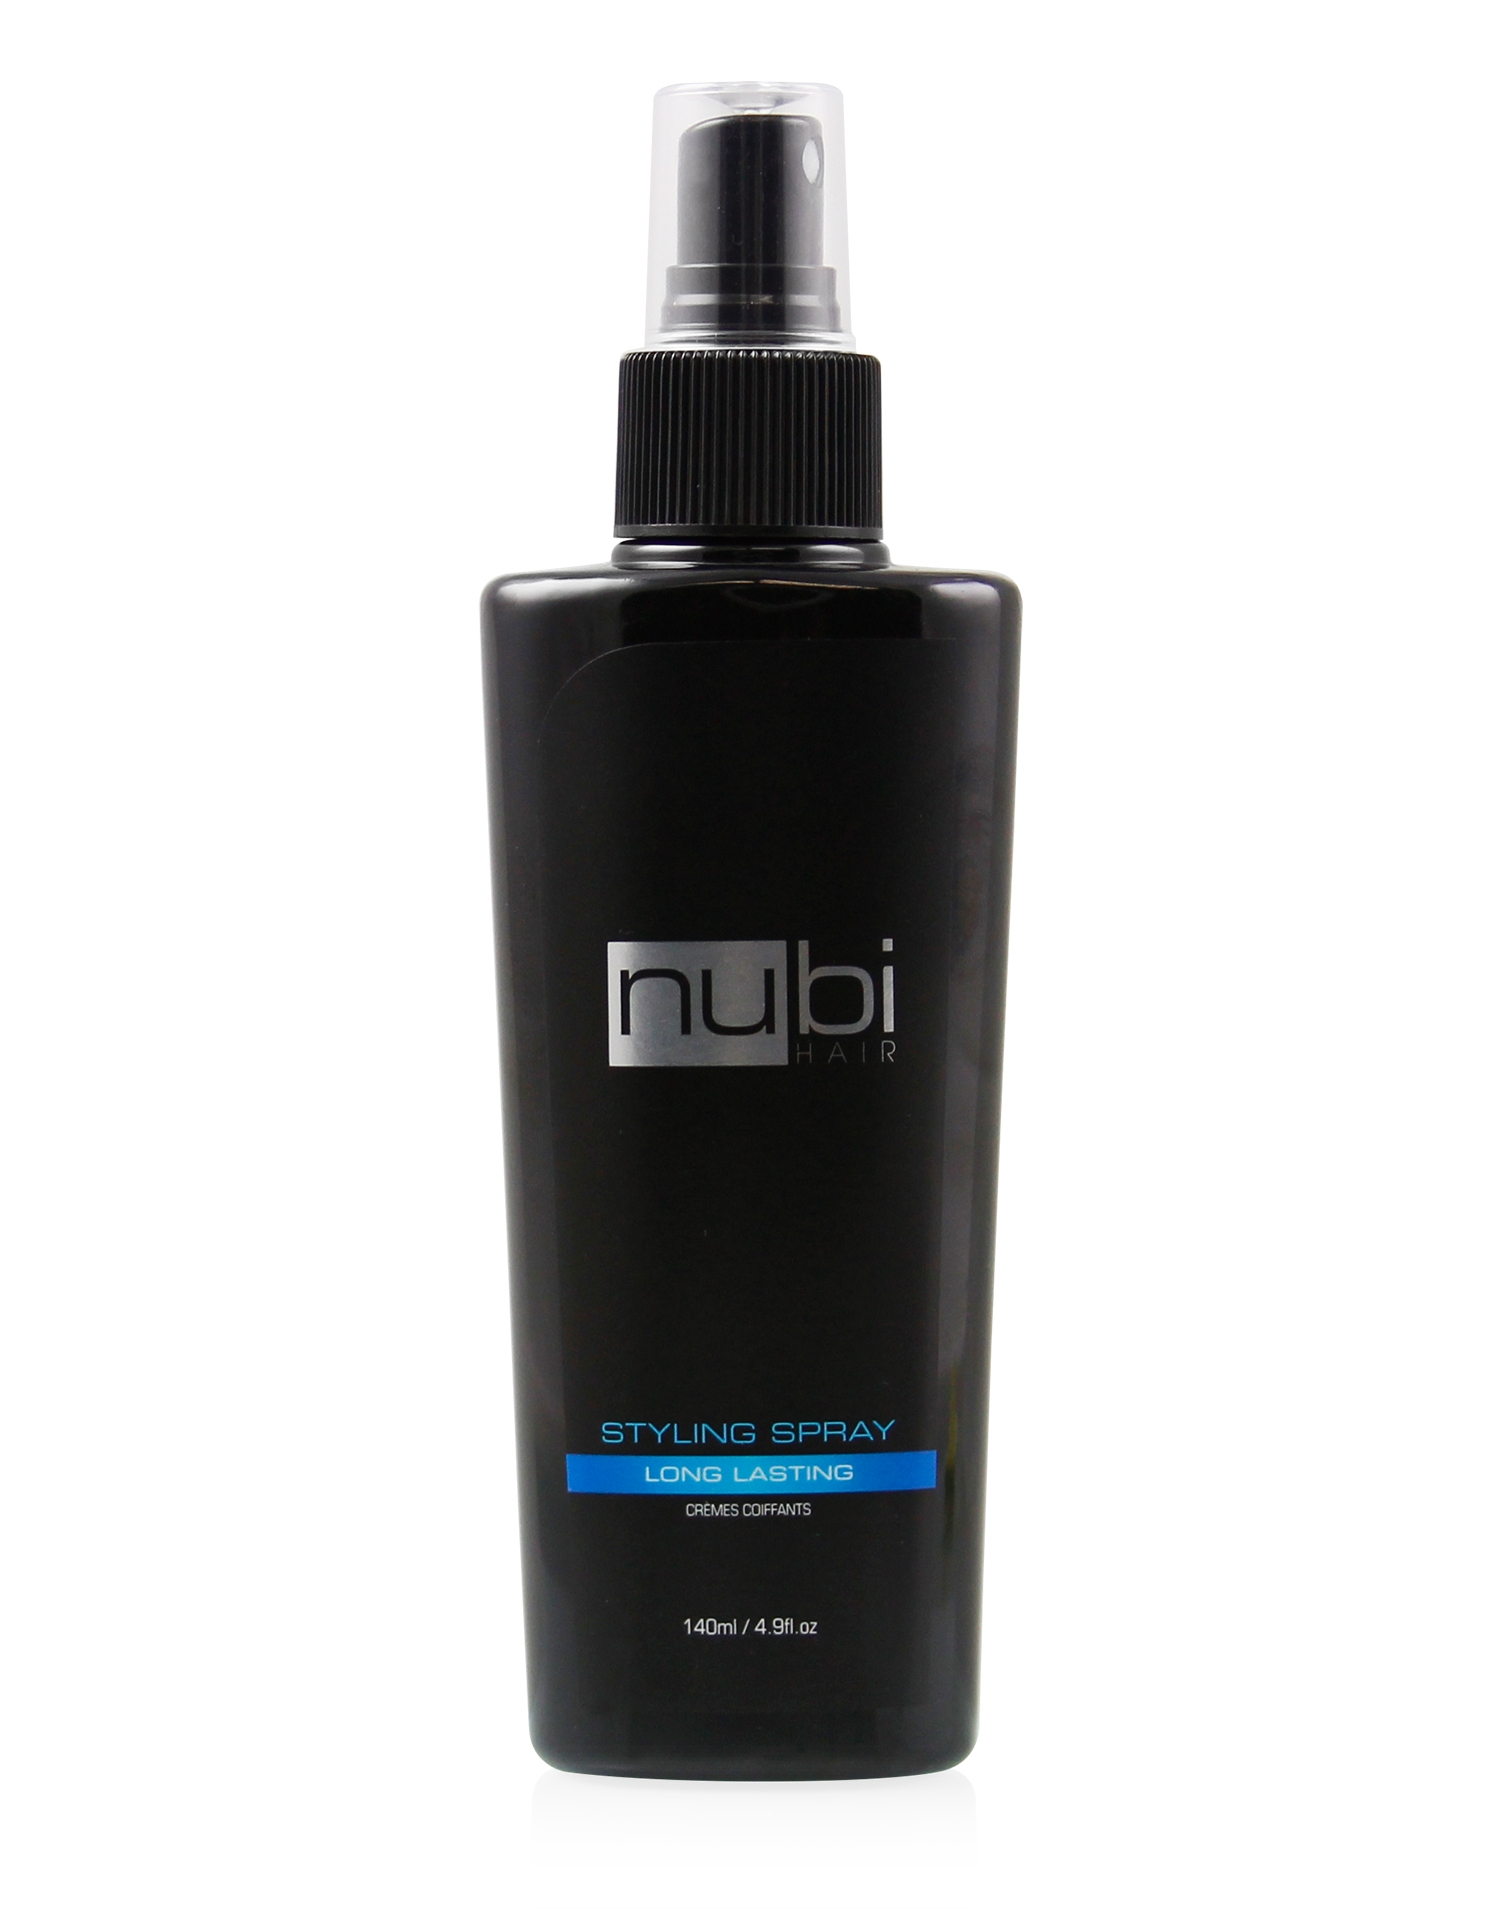 Nubi hair styling spray